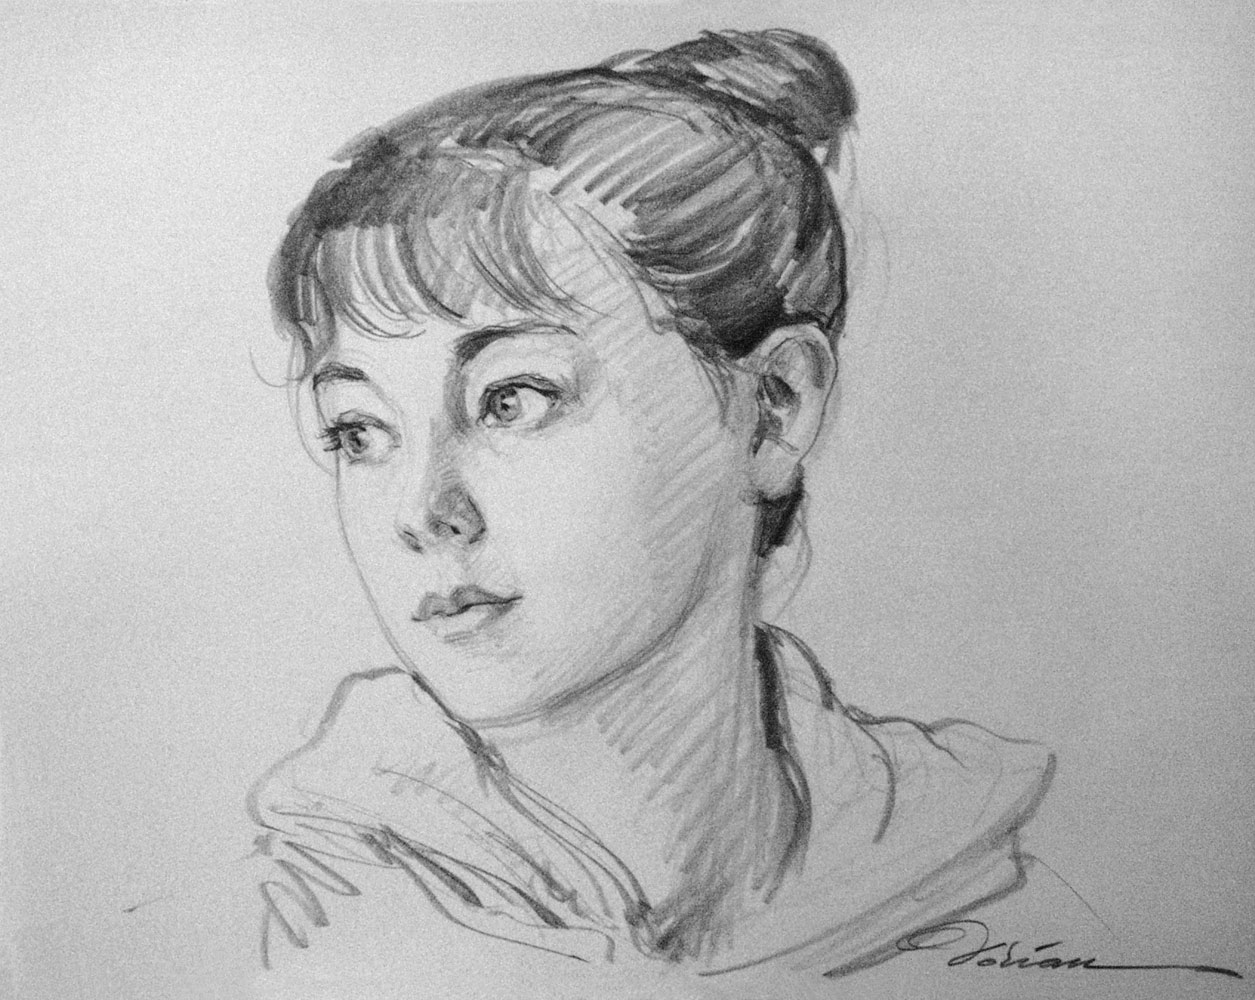 Pencil_Sketches_59.jpg